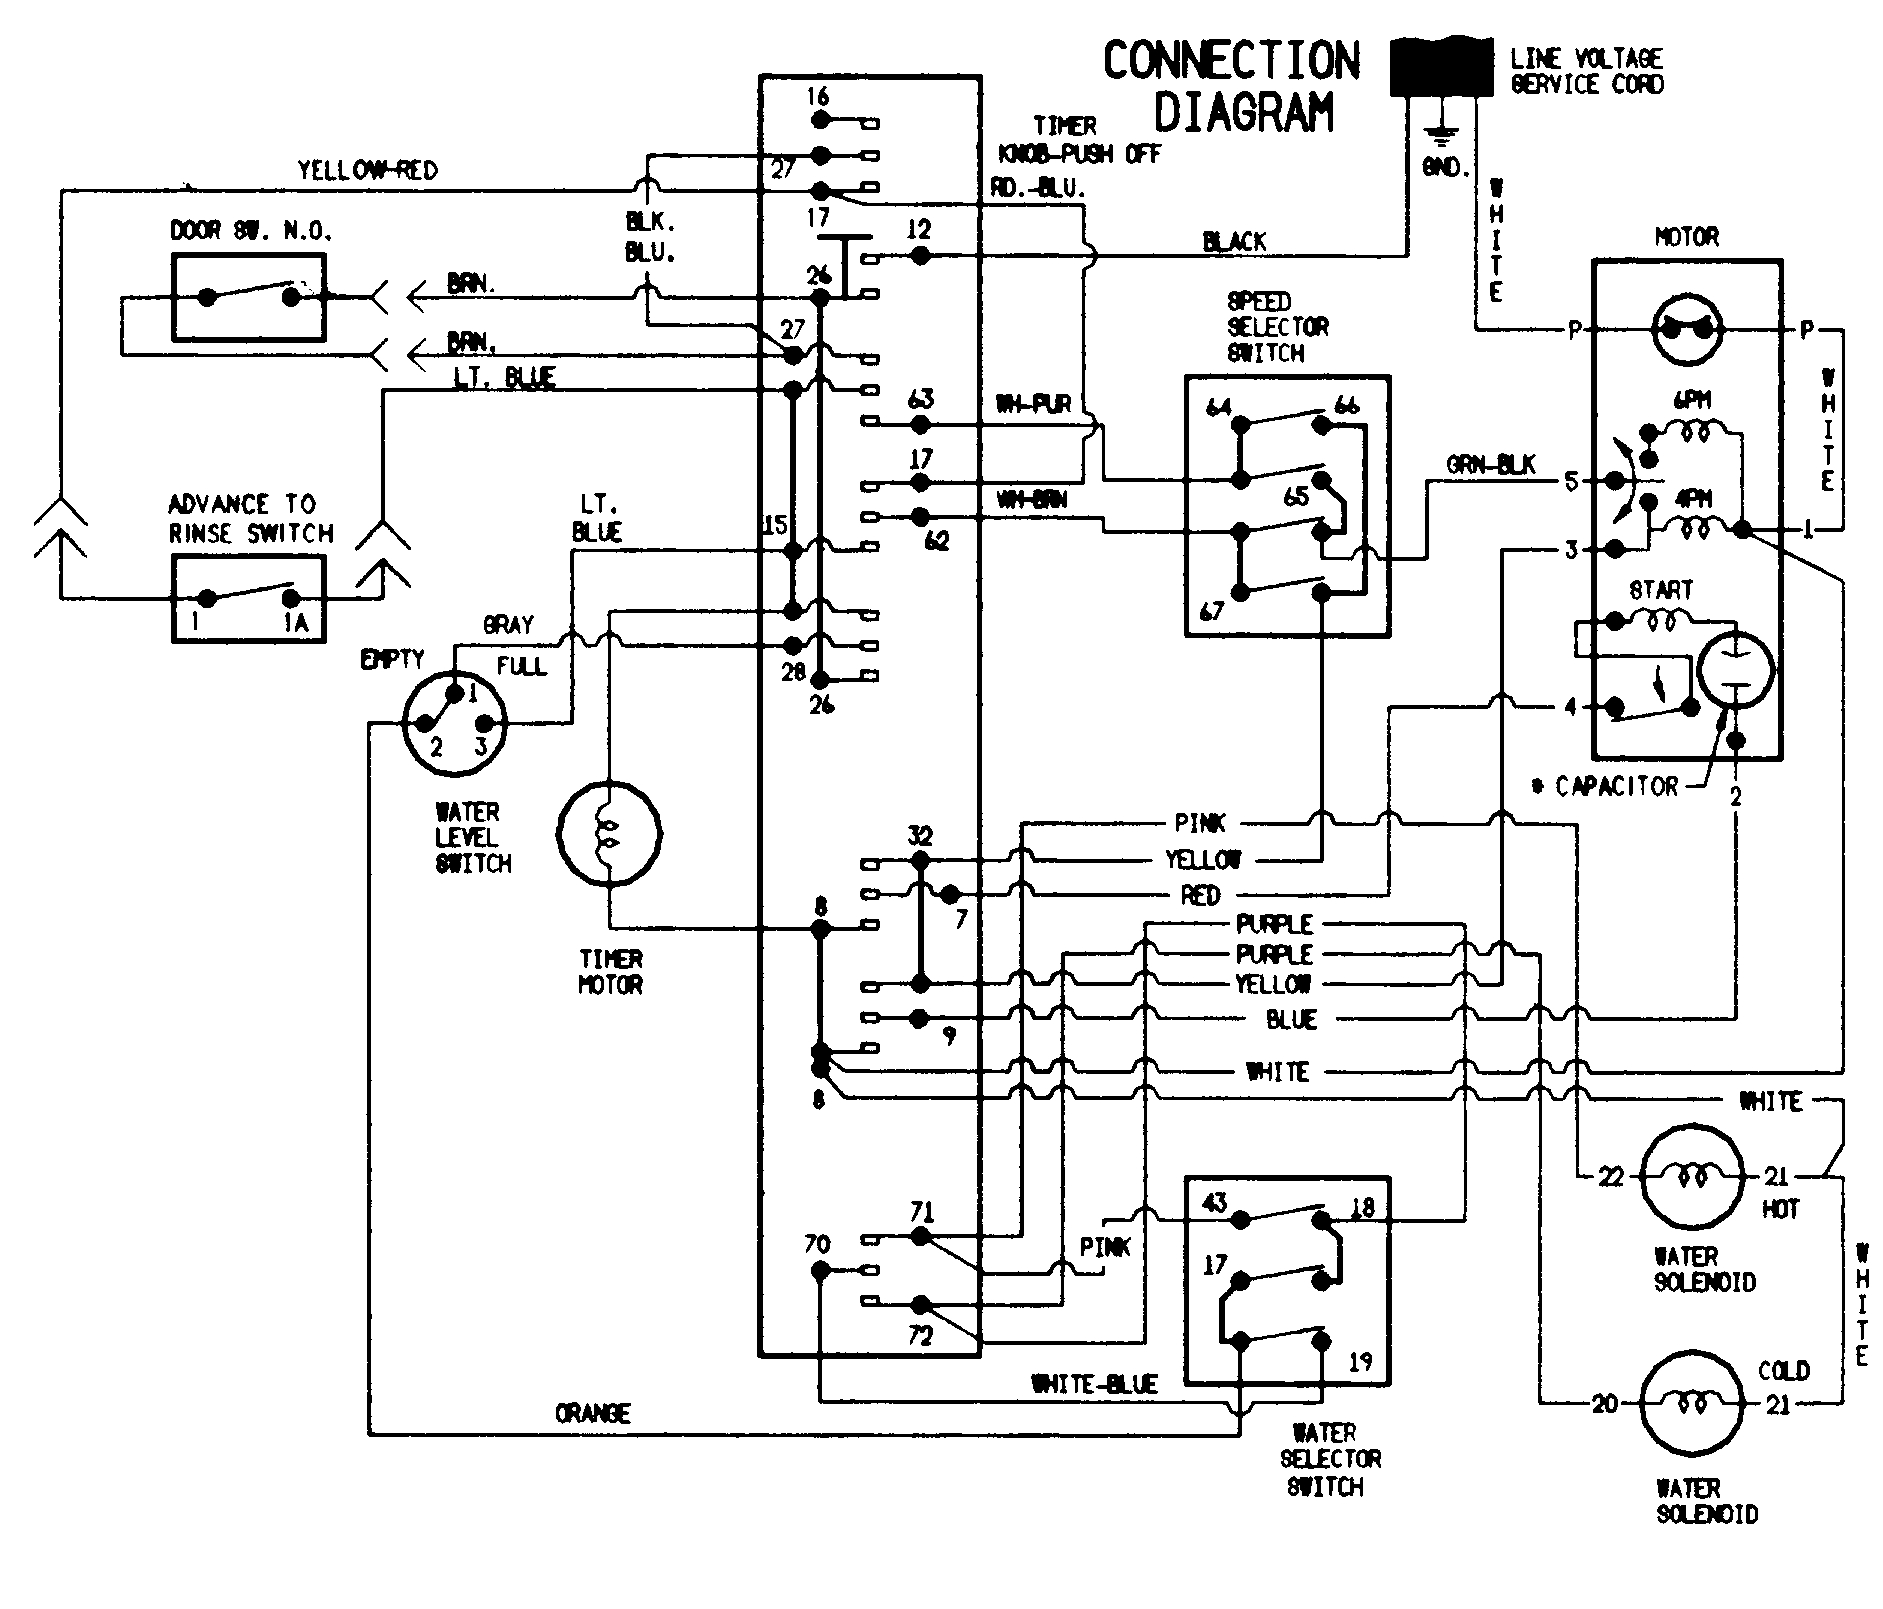 wiring diagram for frigidaire electric dryer